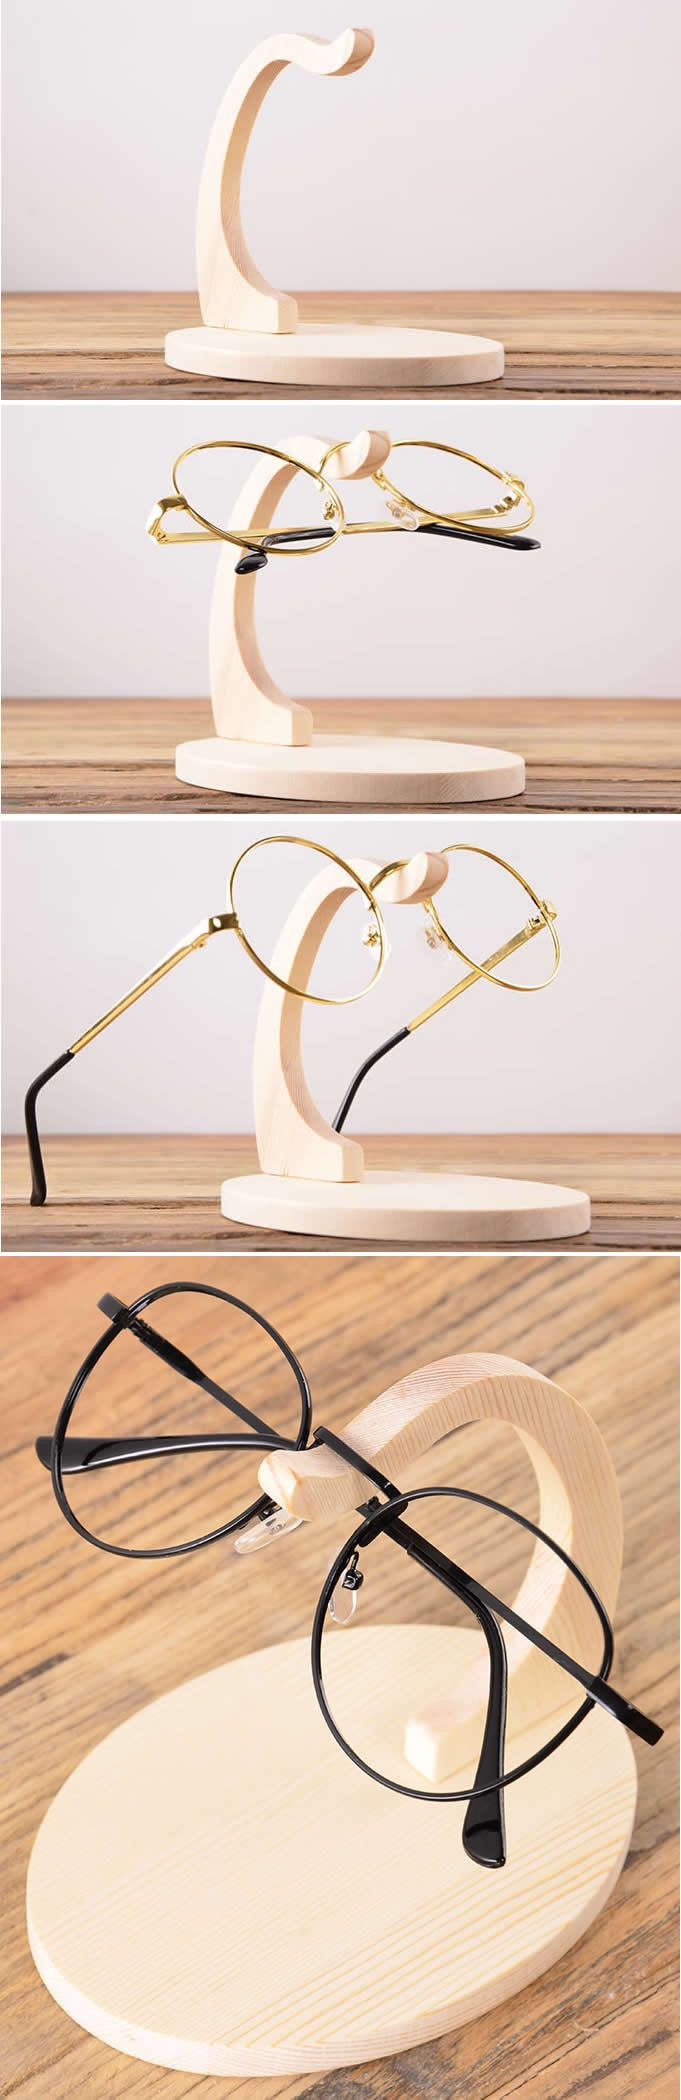 Wooden Eyeglass Sunglasses Display Stand Holder